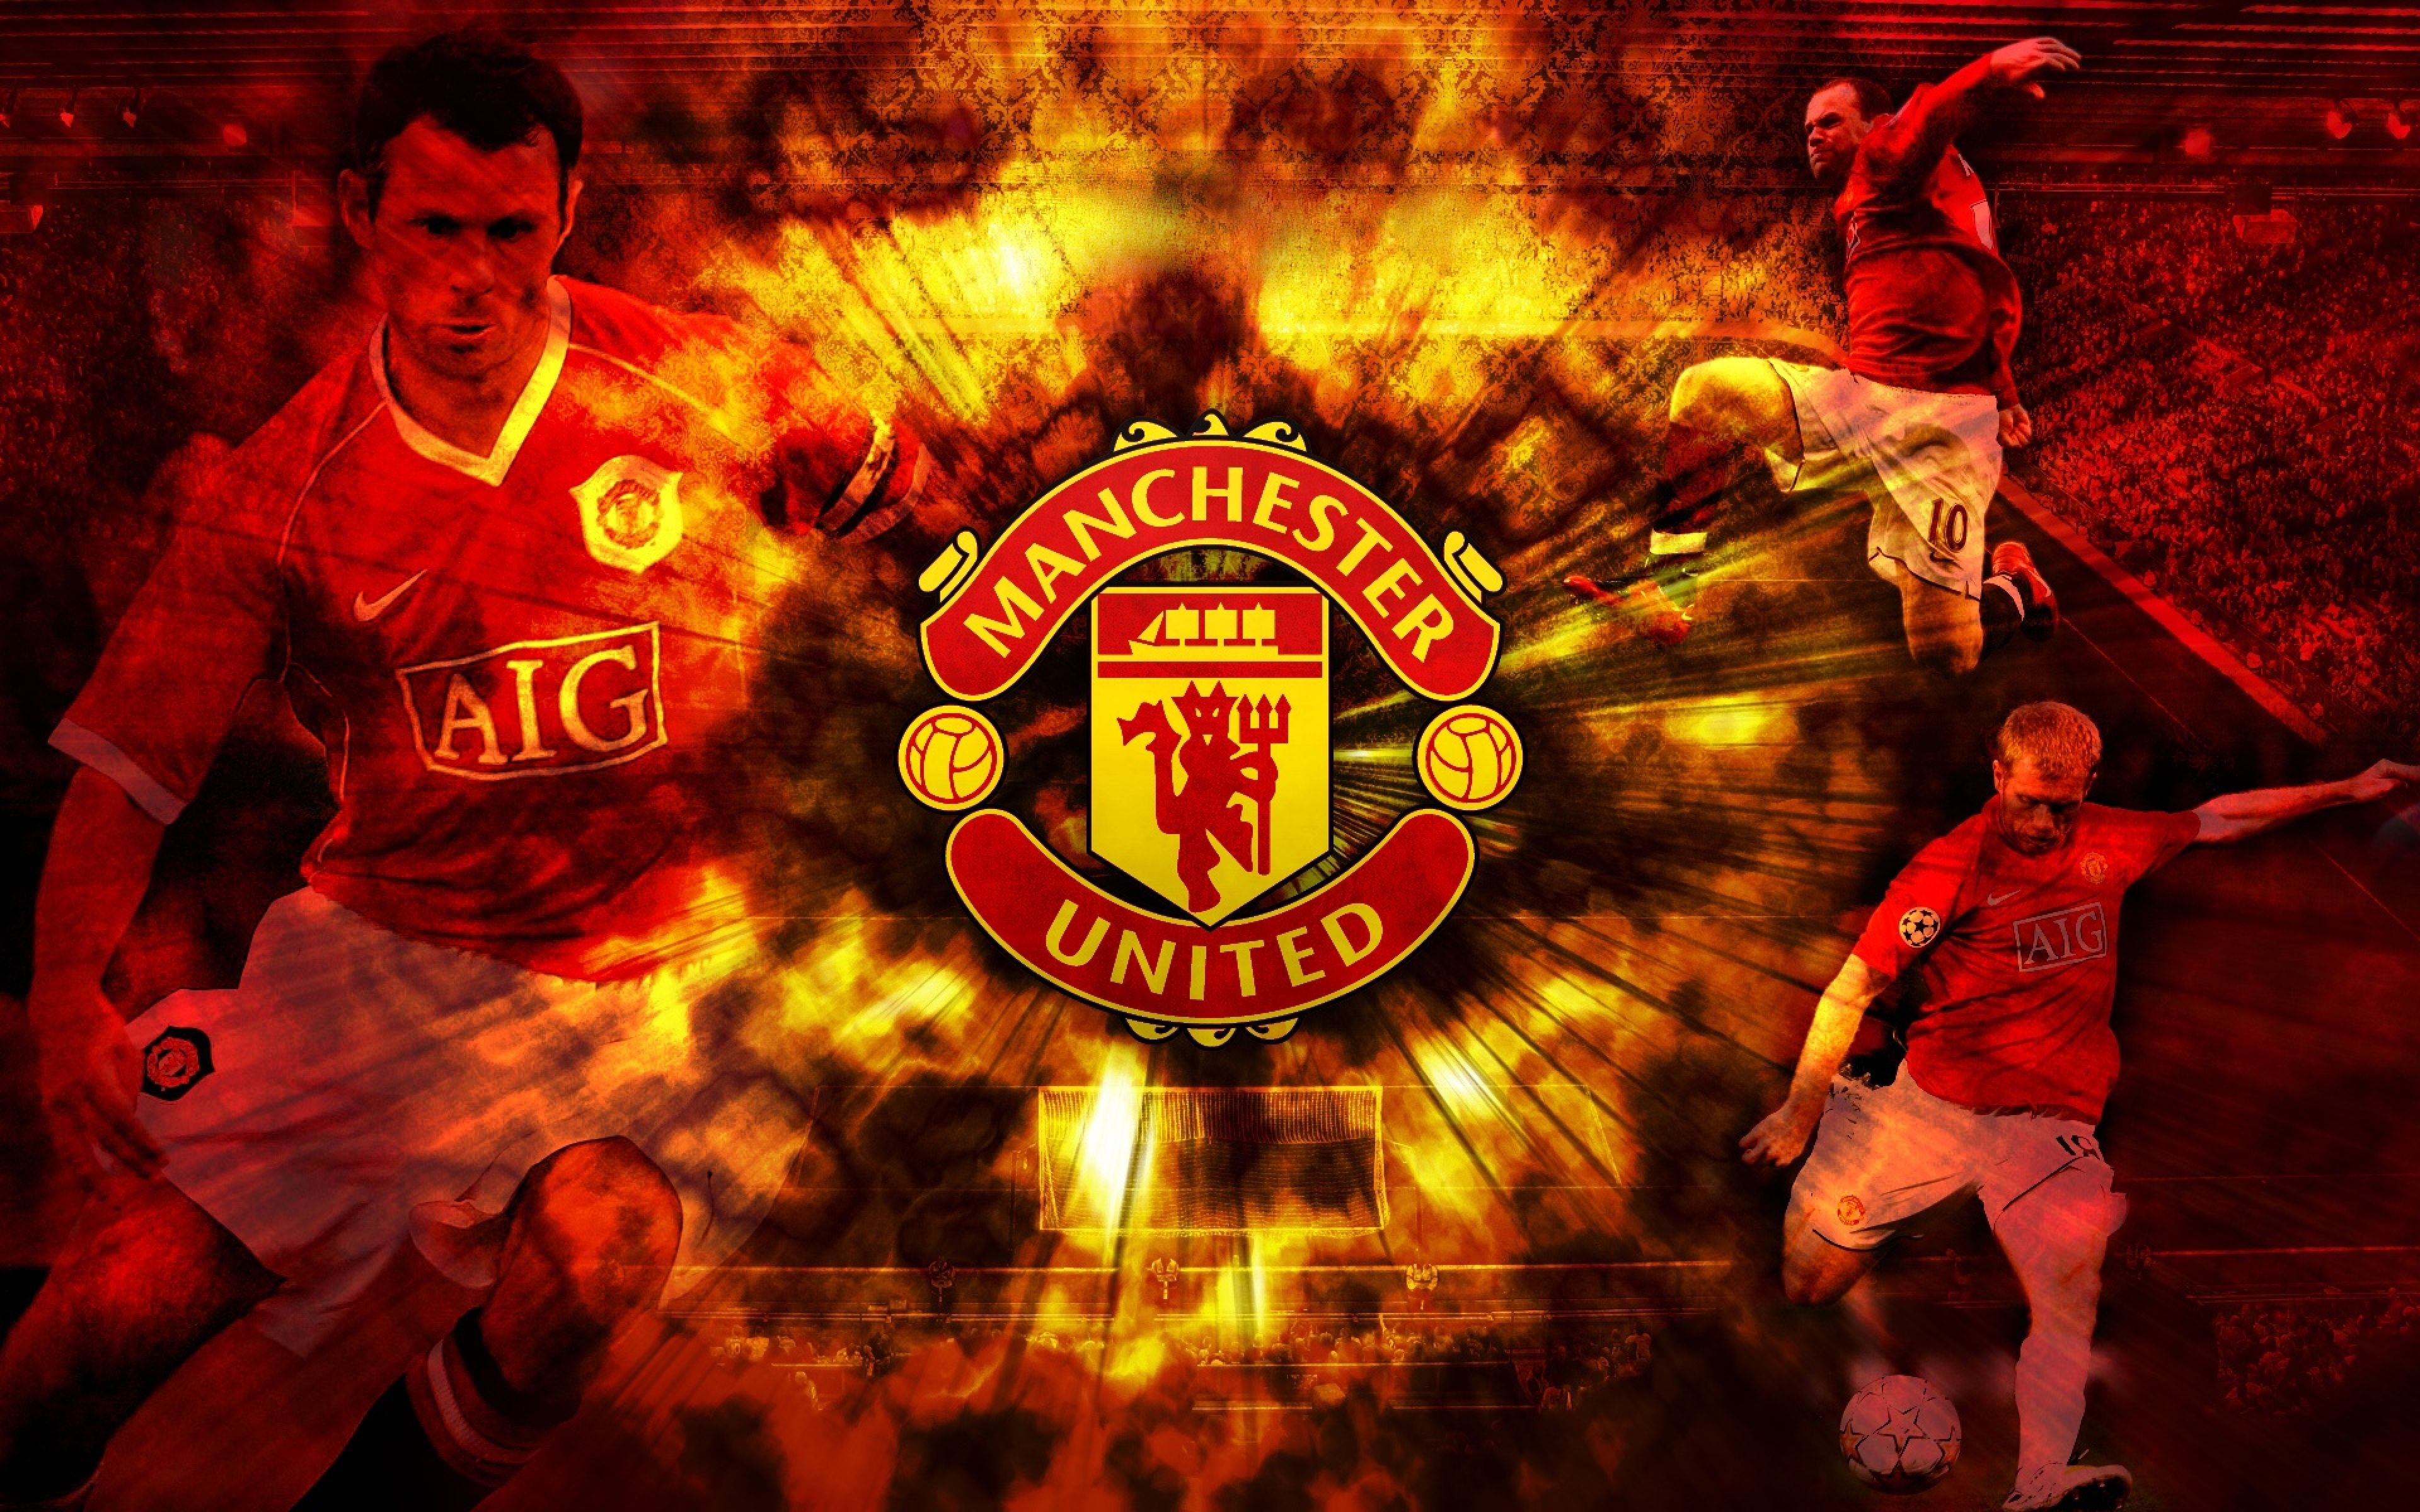 Ultra Hd K Manchester United Wallpapers Hd Desktop Backgrounds Manchester United Wallpaper Manchester United Manchester United Football Club